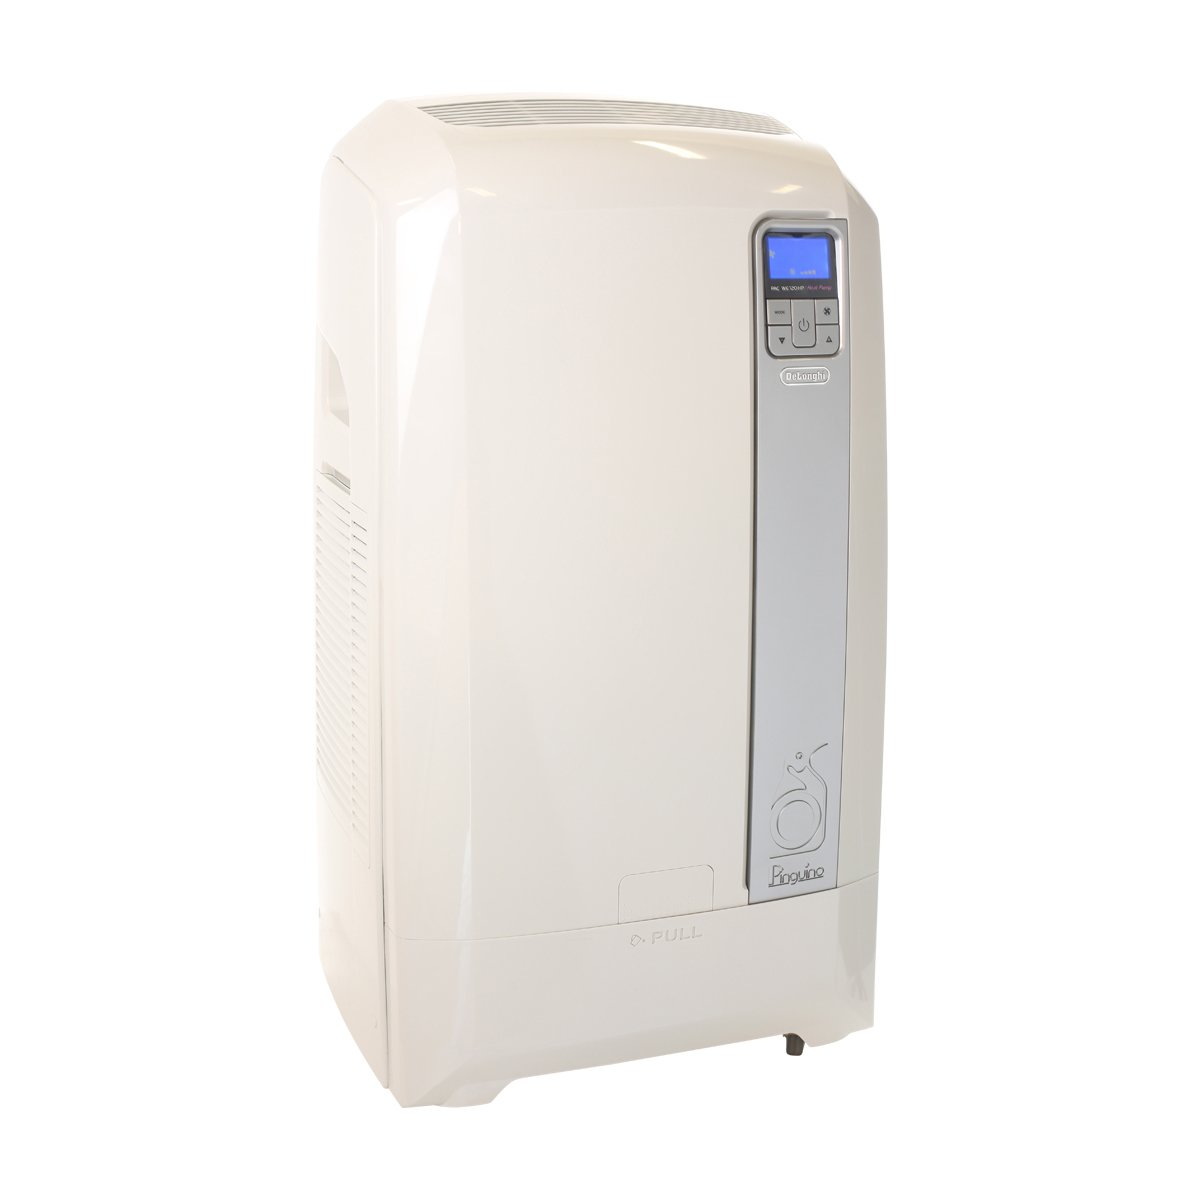 Delonghi PACWE120HP 3.52kW Portable Water To Air Technology Reverse Cycle Aircon - FREE Delivery & Price Match* image